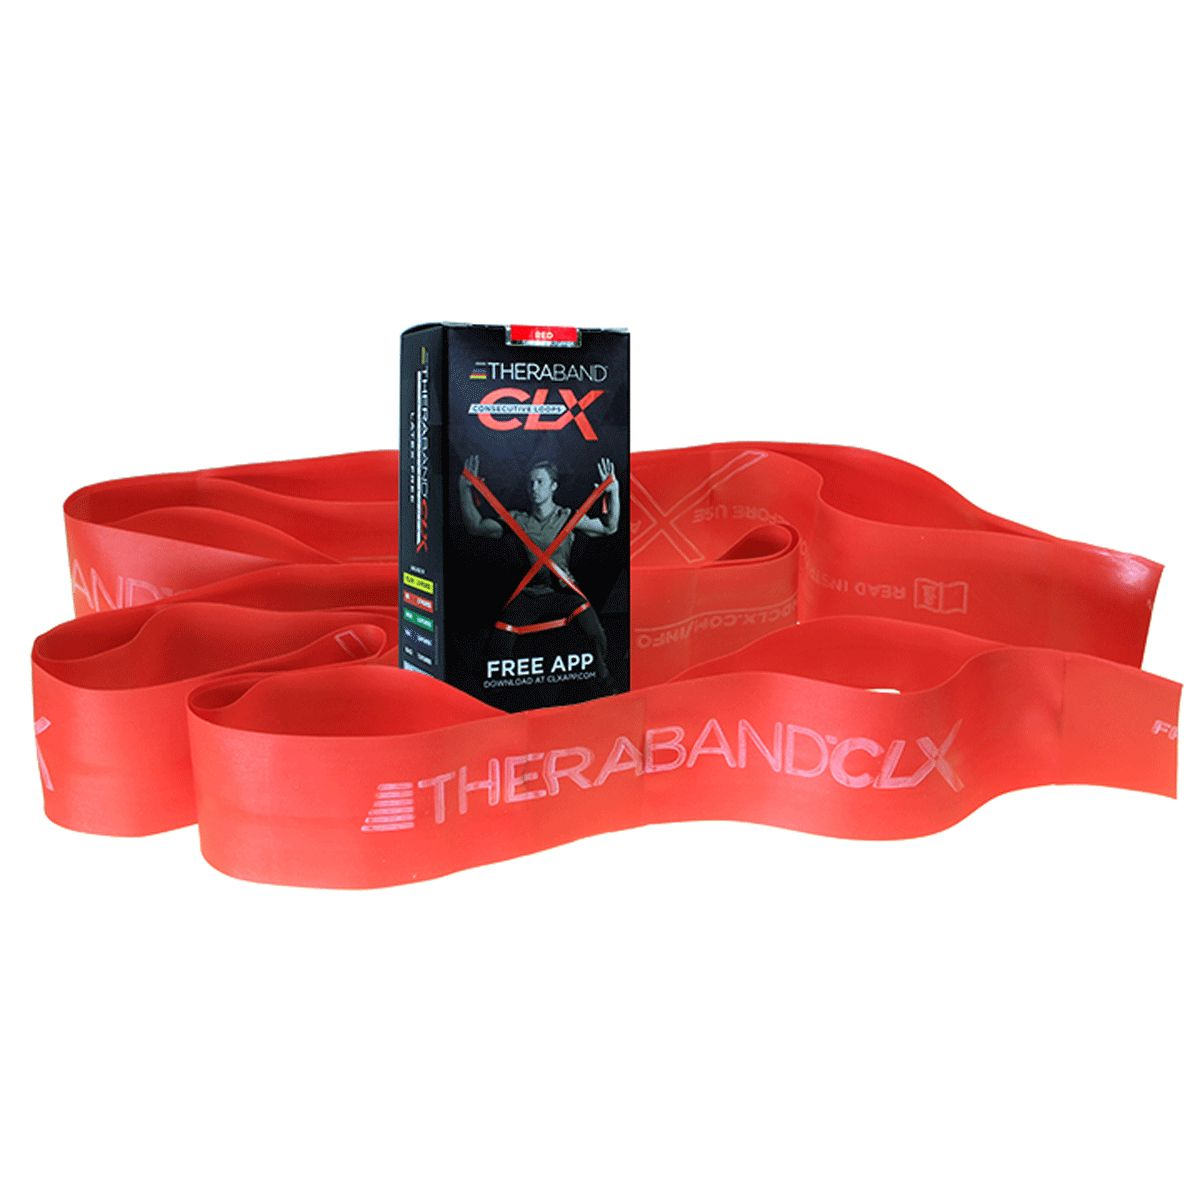 theraband clx red